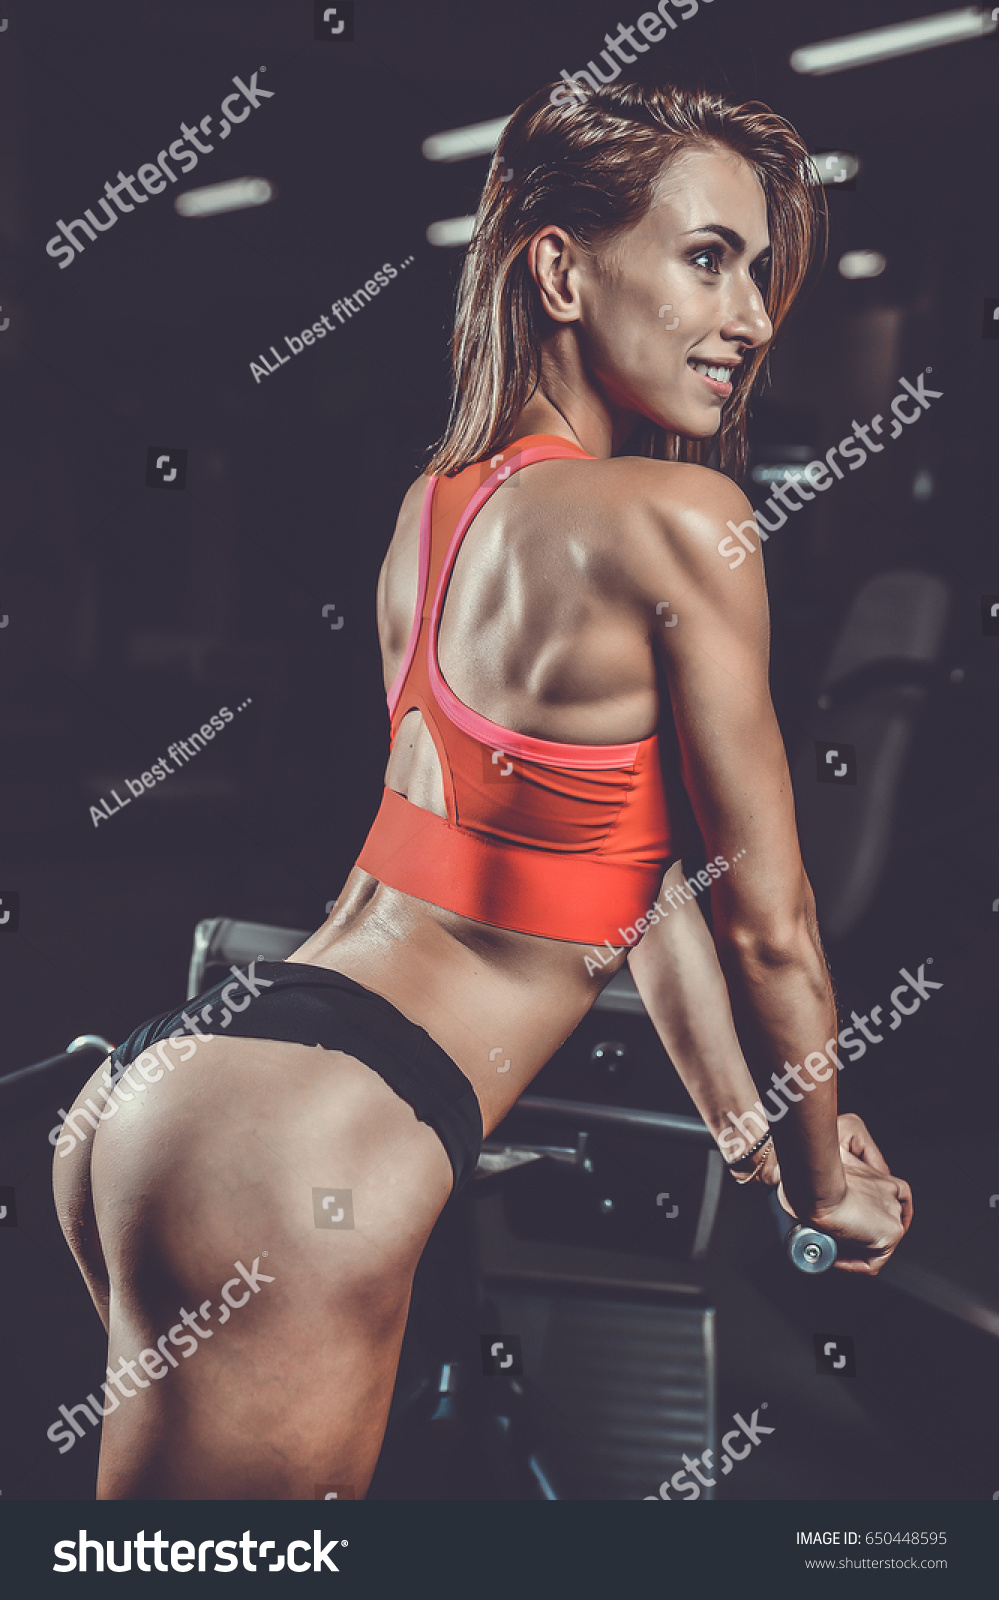 pretty fitness sexy model luxury ass stock photo (download now